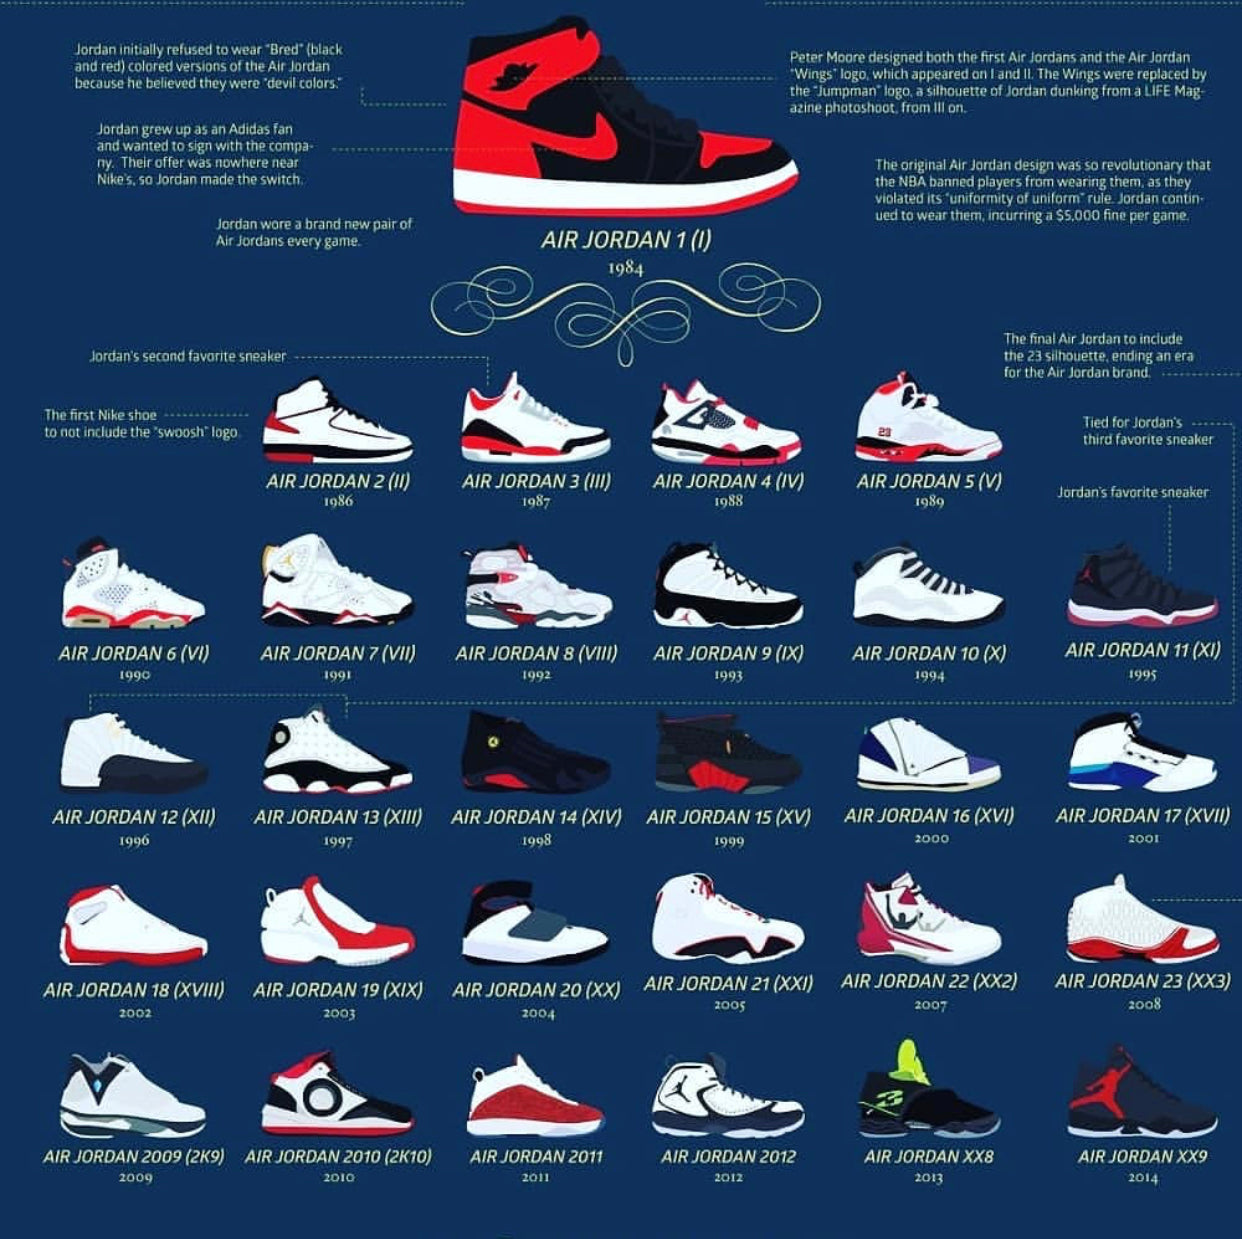 The Most Overrated Air Jordan